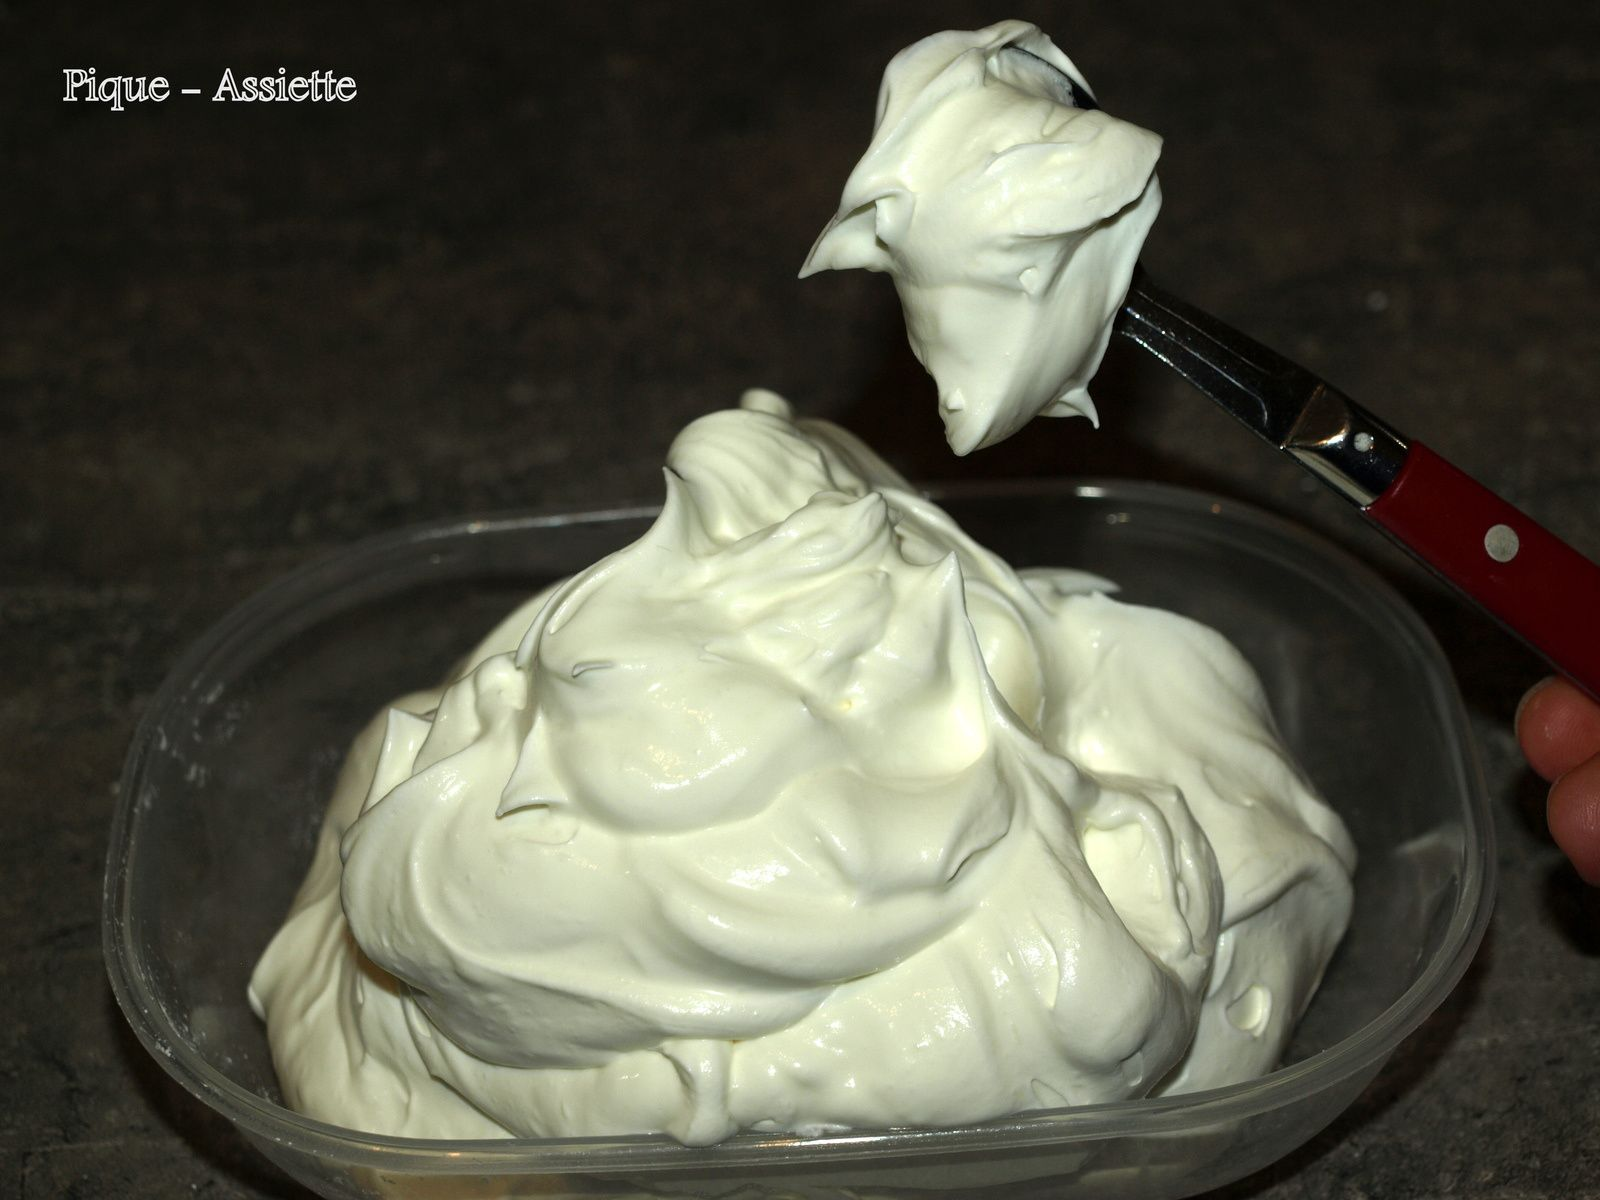 Chantilly au mascarpone maison.